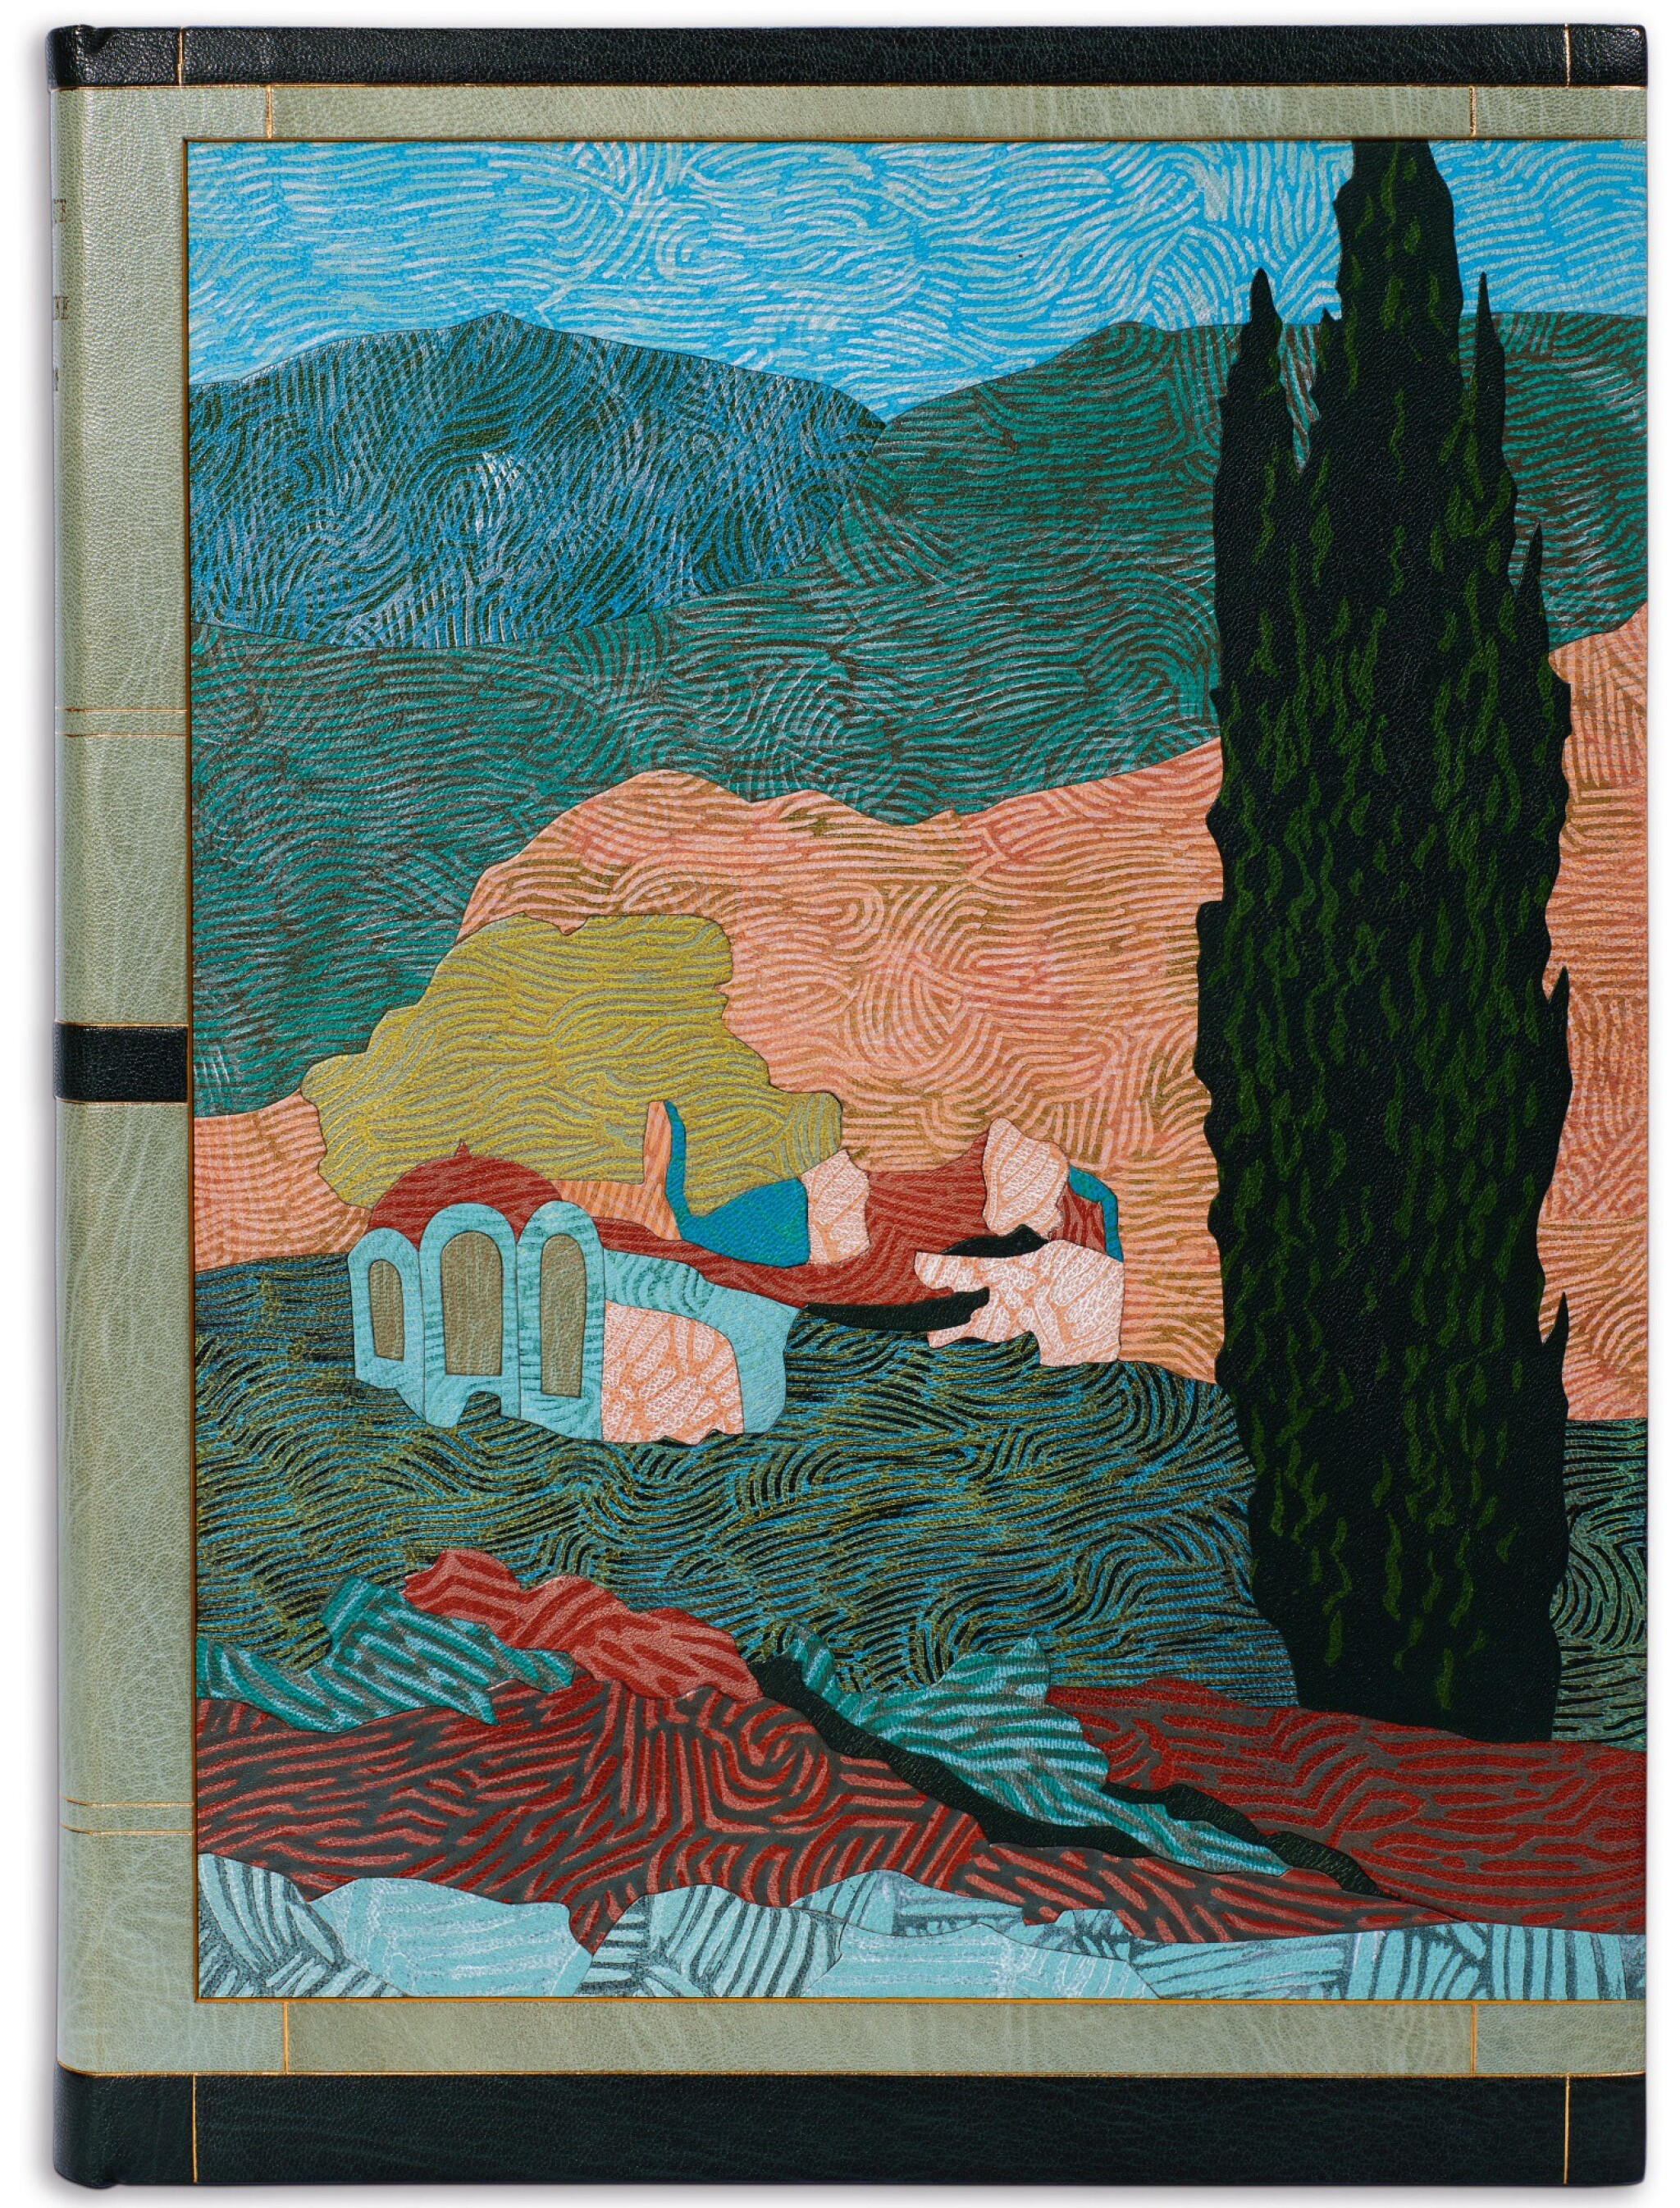 View 1 of Lot 96. Schmied and Goulden. Salonique, la Macédoine, l'Athos. Paris, 1922, modern pictorial morocco.